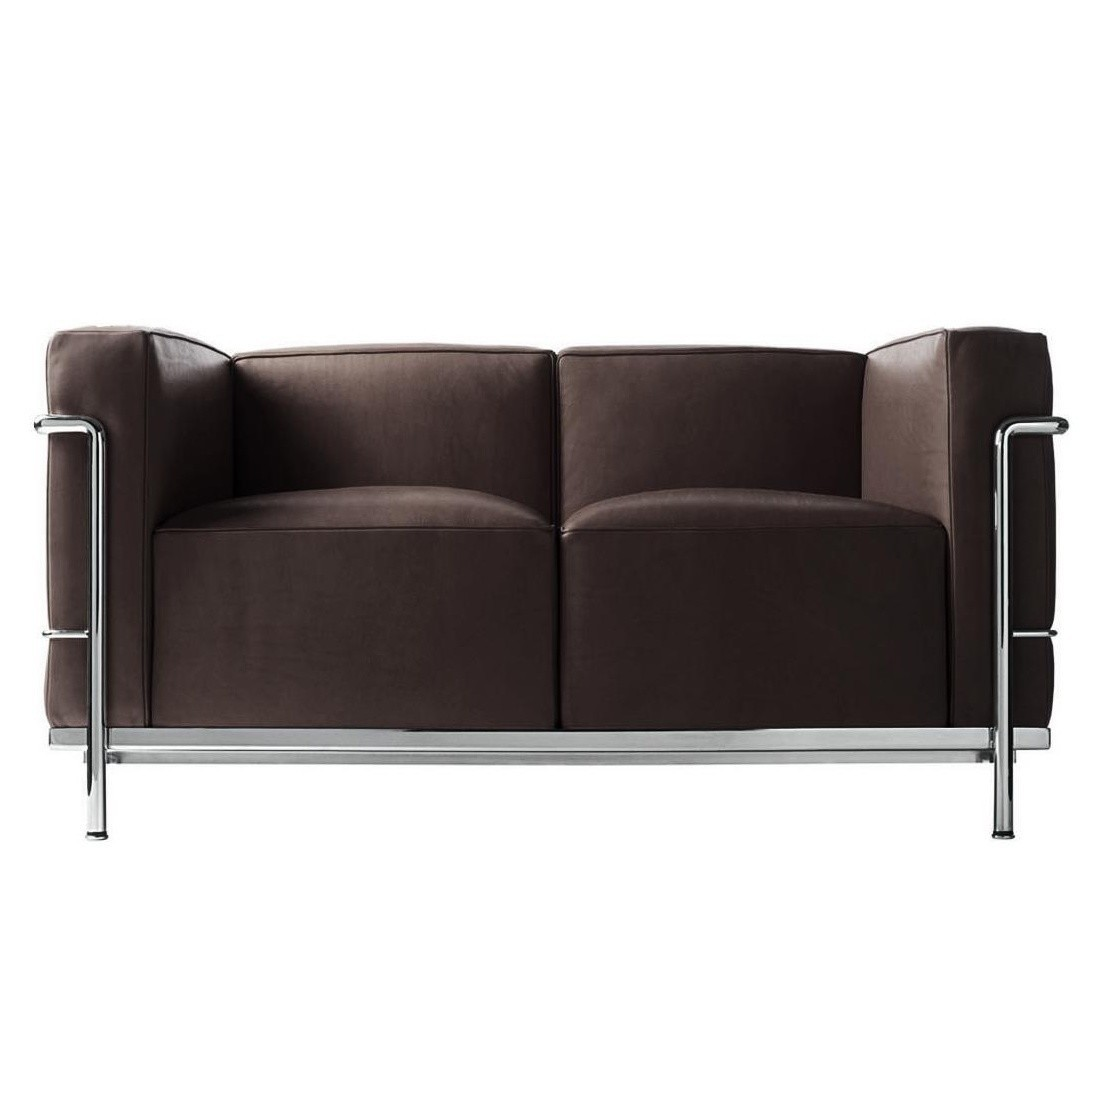 Cina Le Corbusier Lc2 Sofa Radica Dark Brown Leather Lcx 13x416